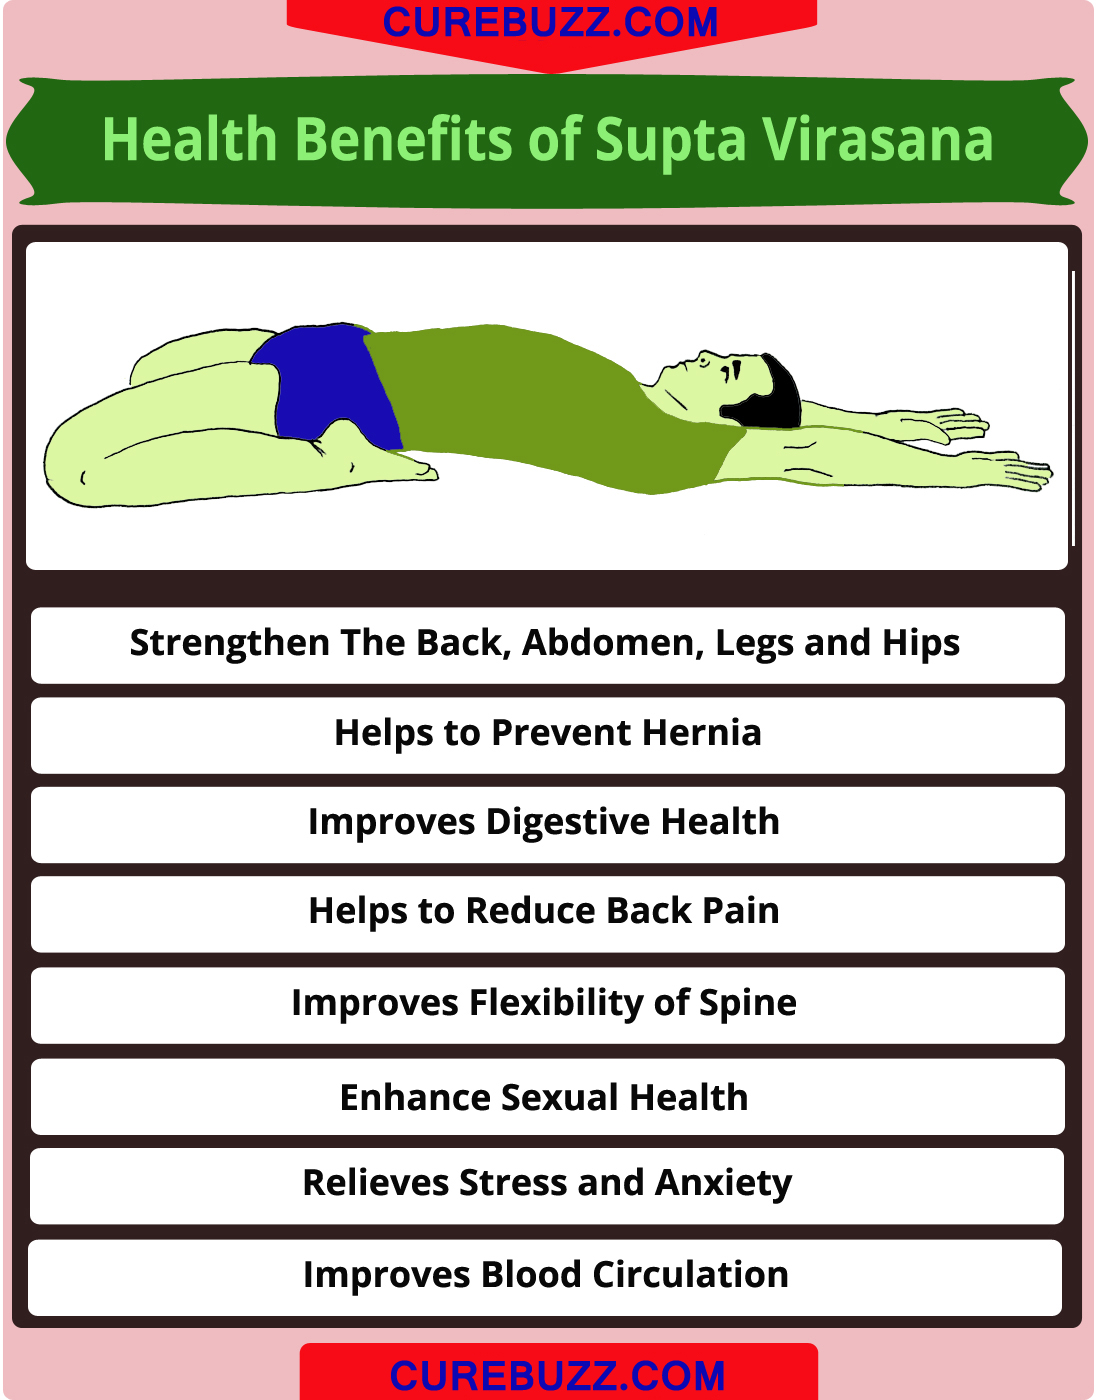 Health benefits of Supta Virasana